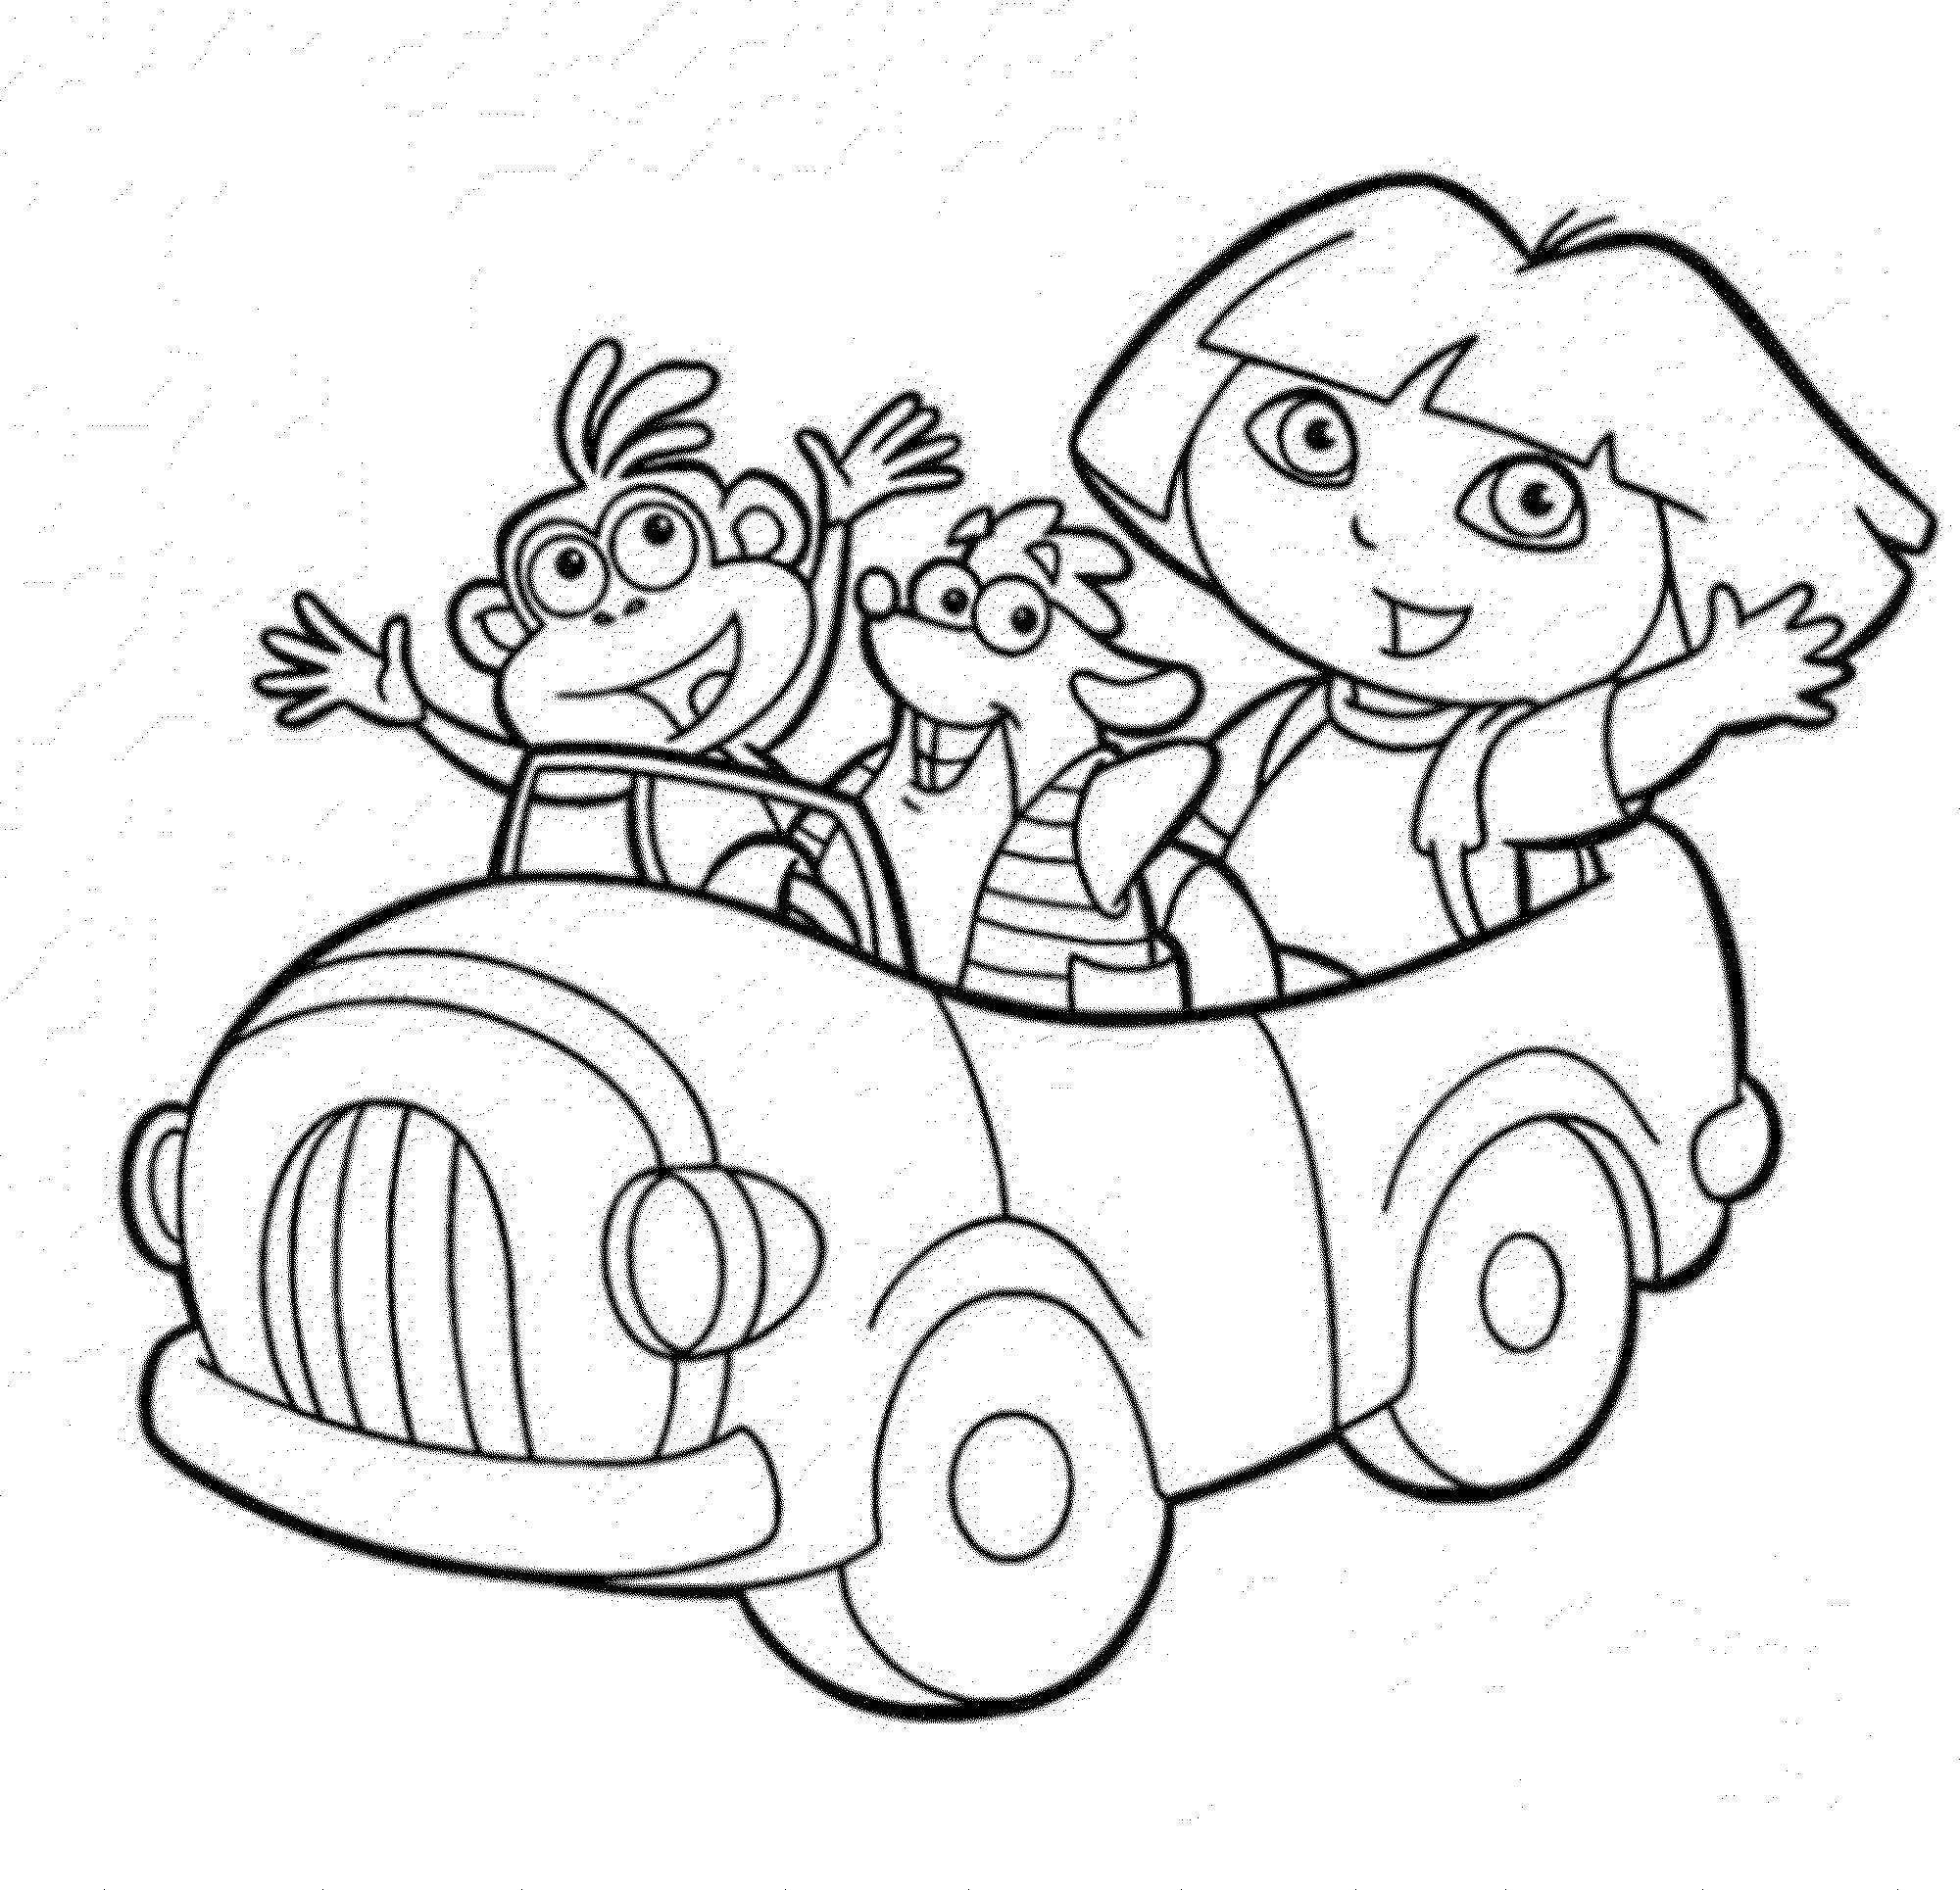 dora coloring pages to print print download dora coloring pages to learn new things dora print coloring to pages